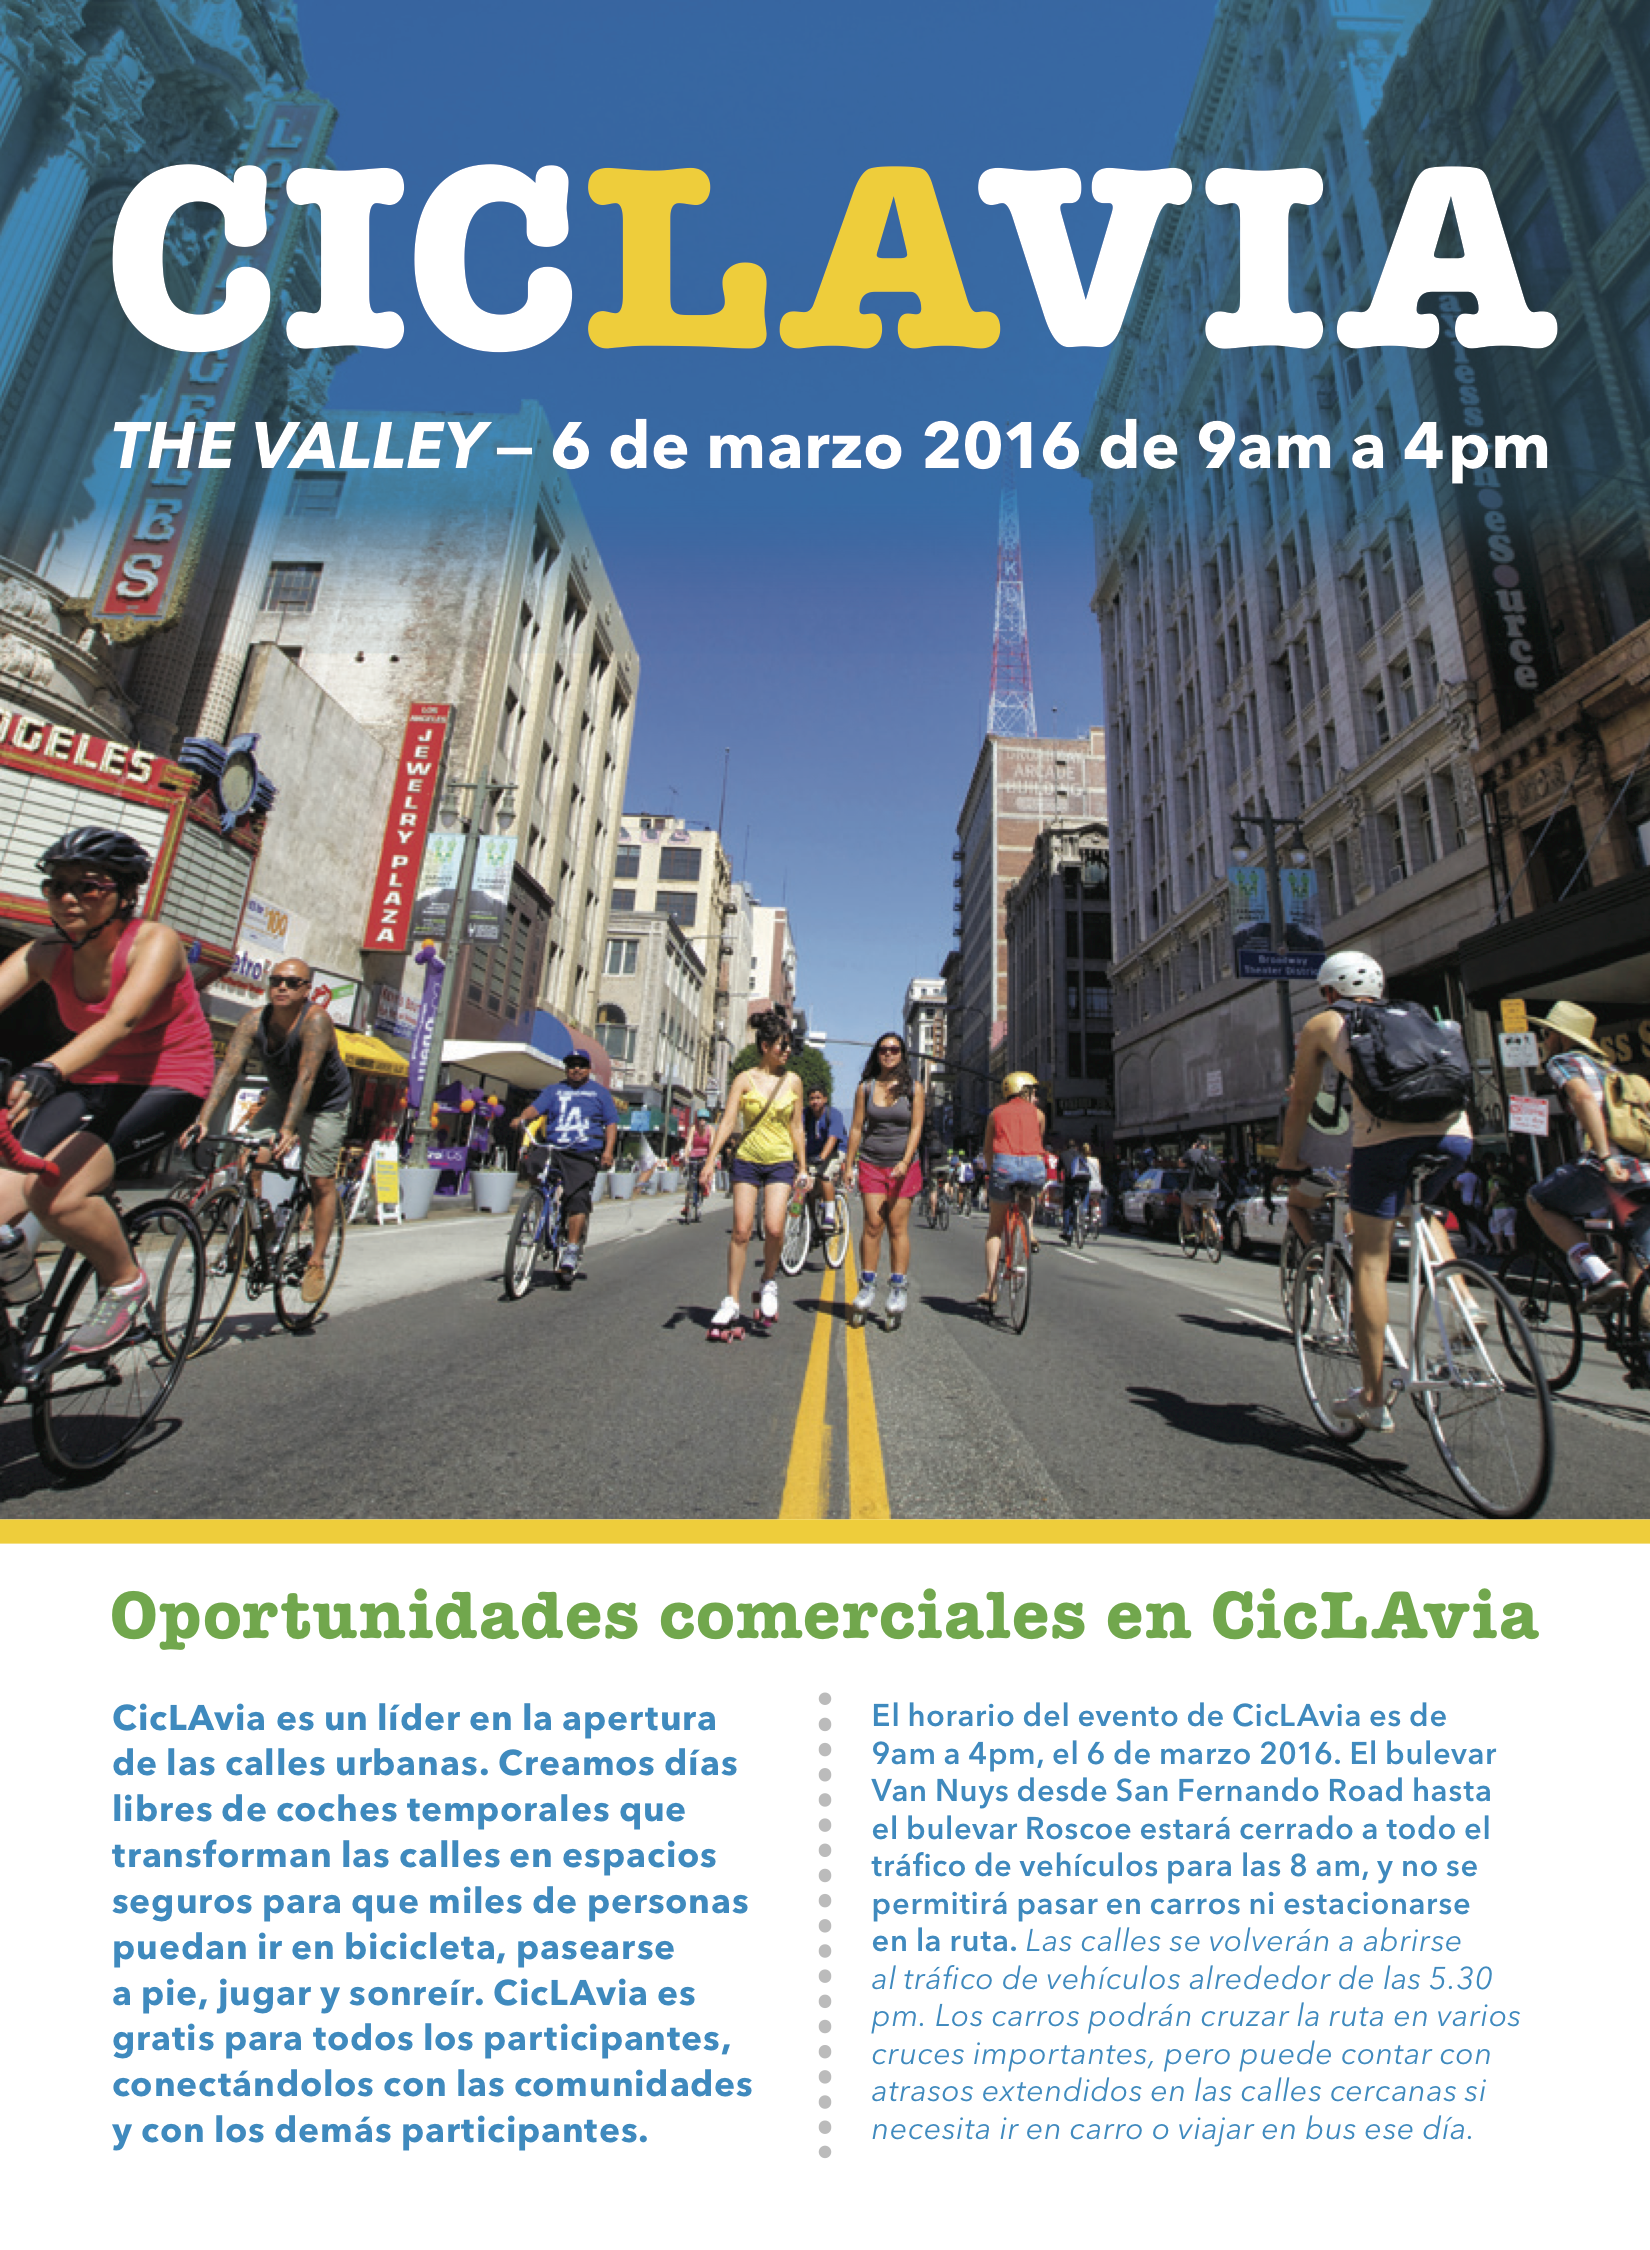 030616_ciclavia_bizoutreach_SP_F_image.png